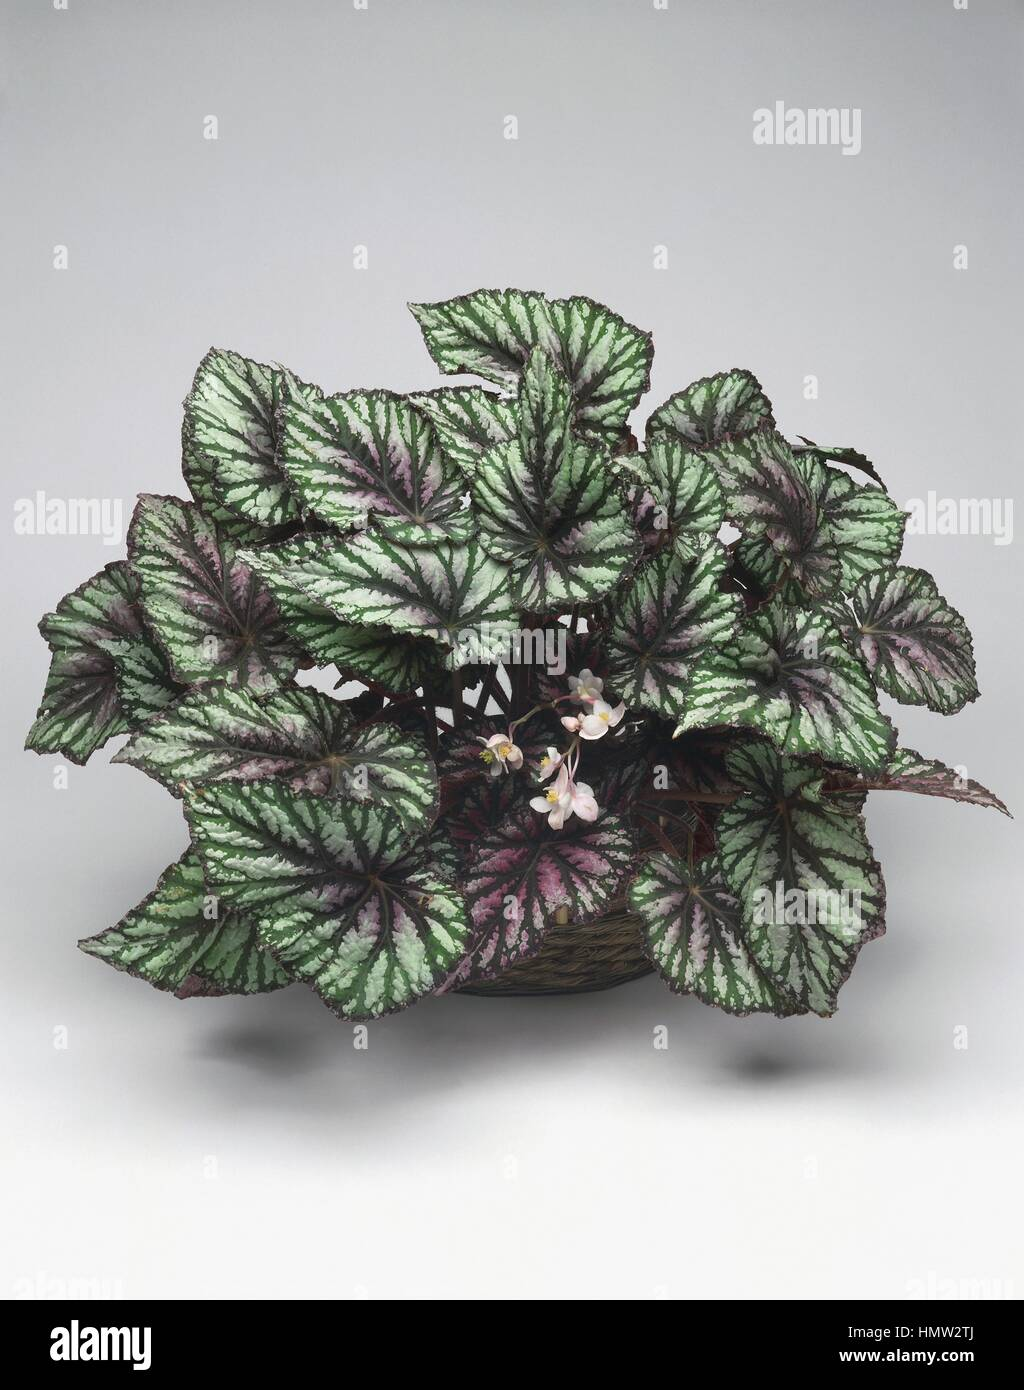 House plants painted leaf begonia begonia rex stock photo 133316754 alamy - Begonie zimmerpflanze ...